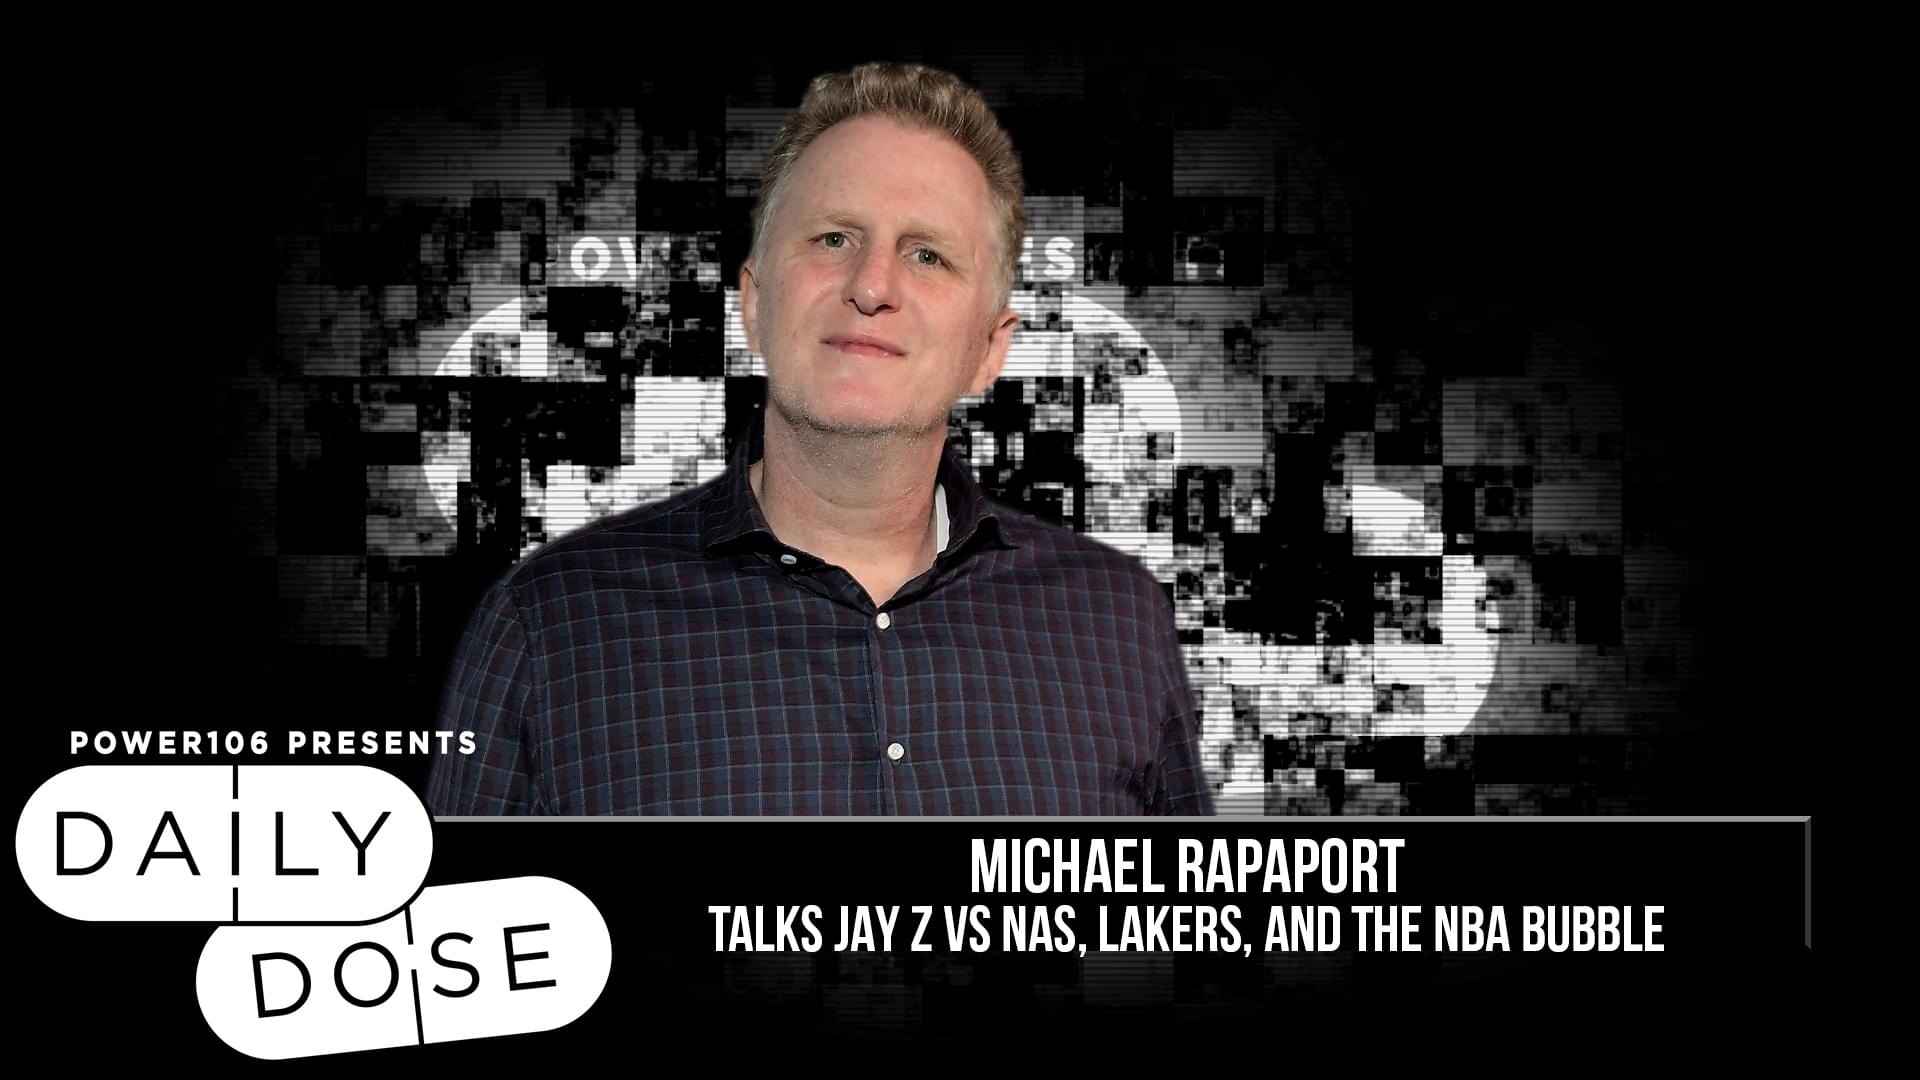 Michael Rapaport Hopes To See Jay Z & Nas In Next Verzuz Battle